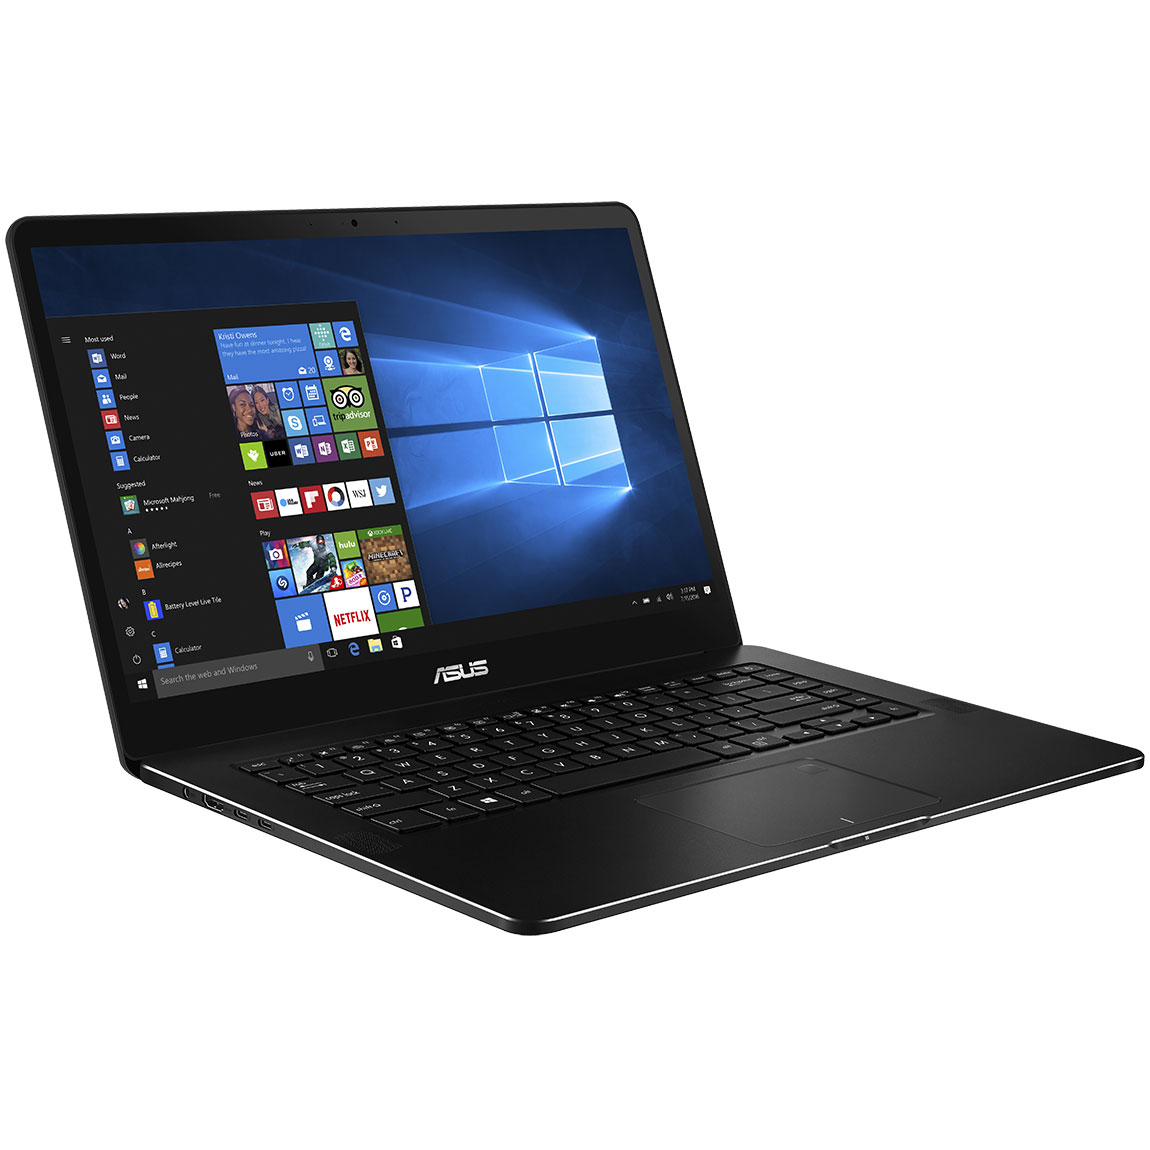 asus zenbook pro ux550vd bo098rb pc portable asus sur. Black Bedroom Furniture Sets. Home Design Ideas